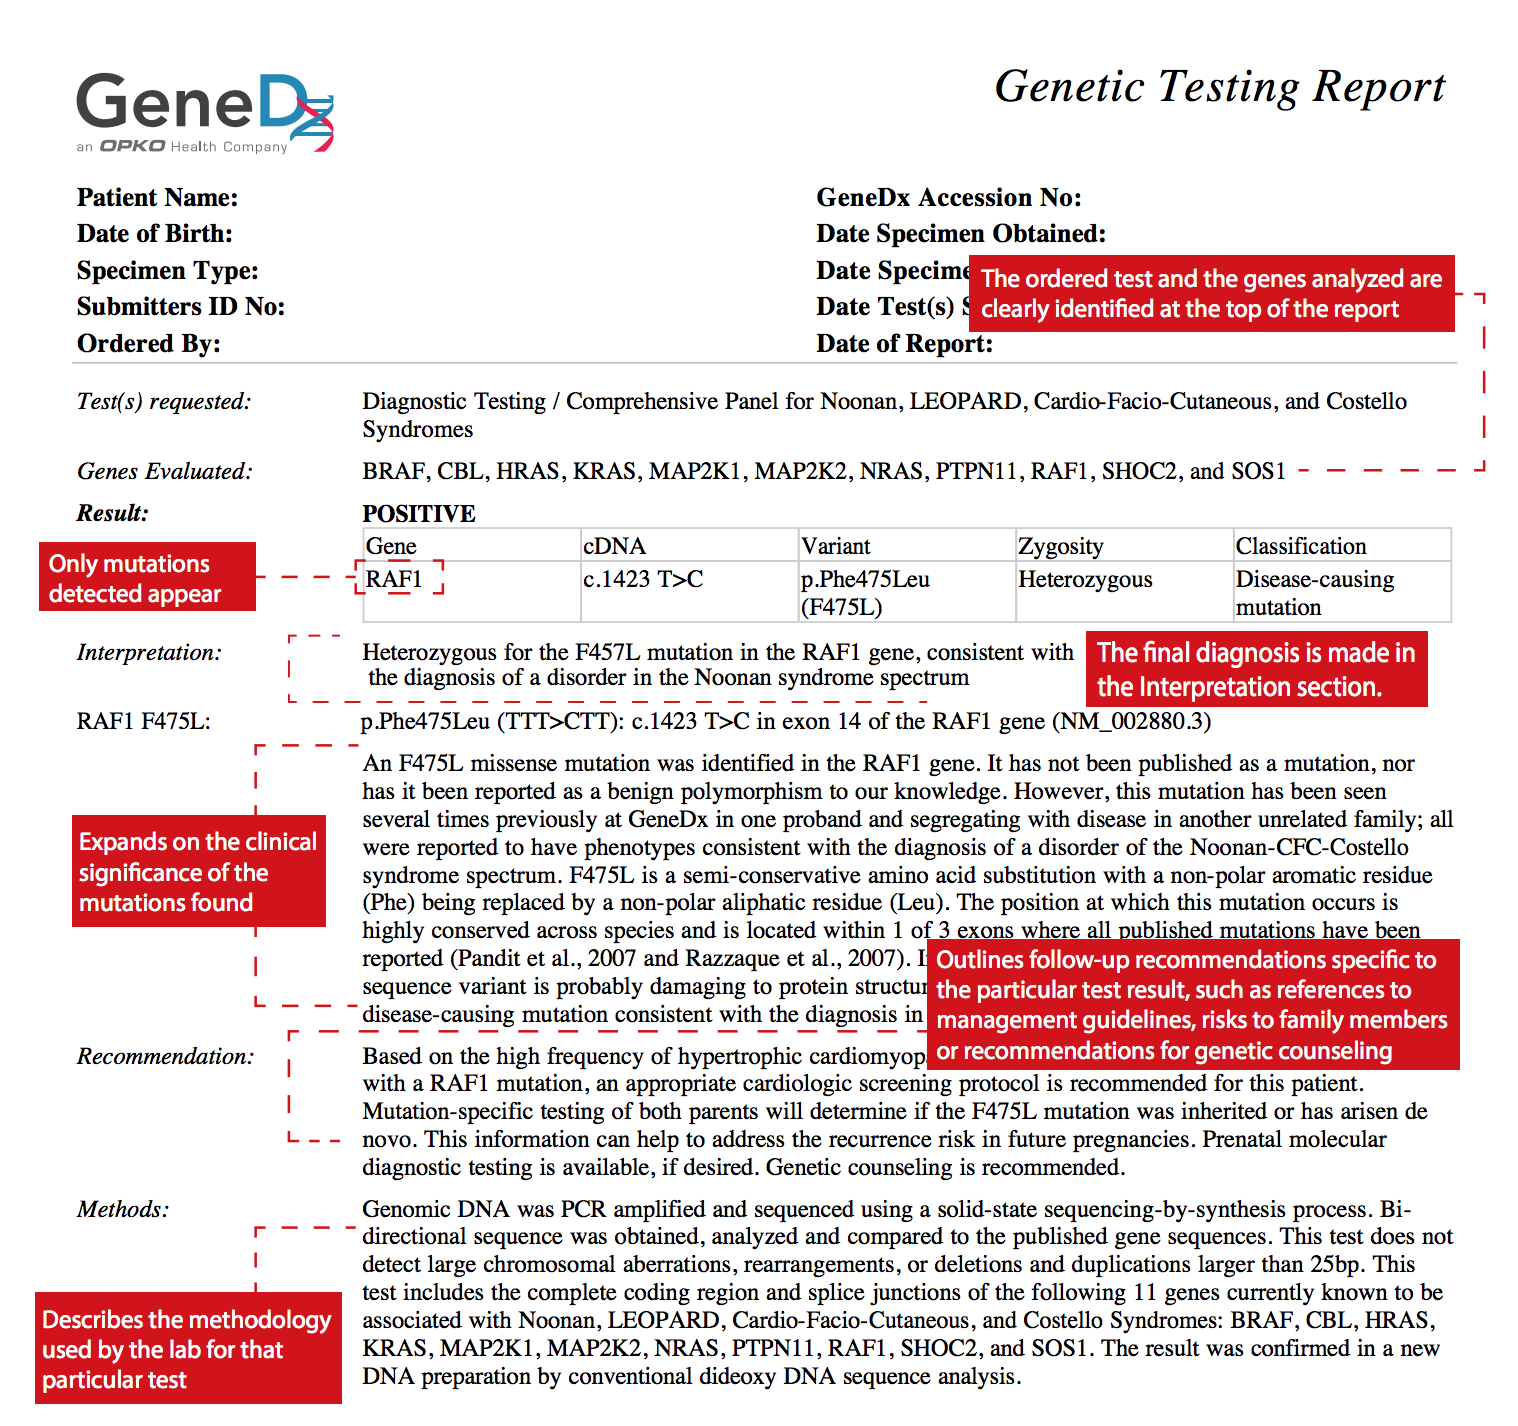 Annotated testing report from Northwell Health